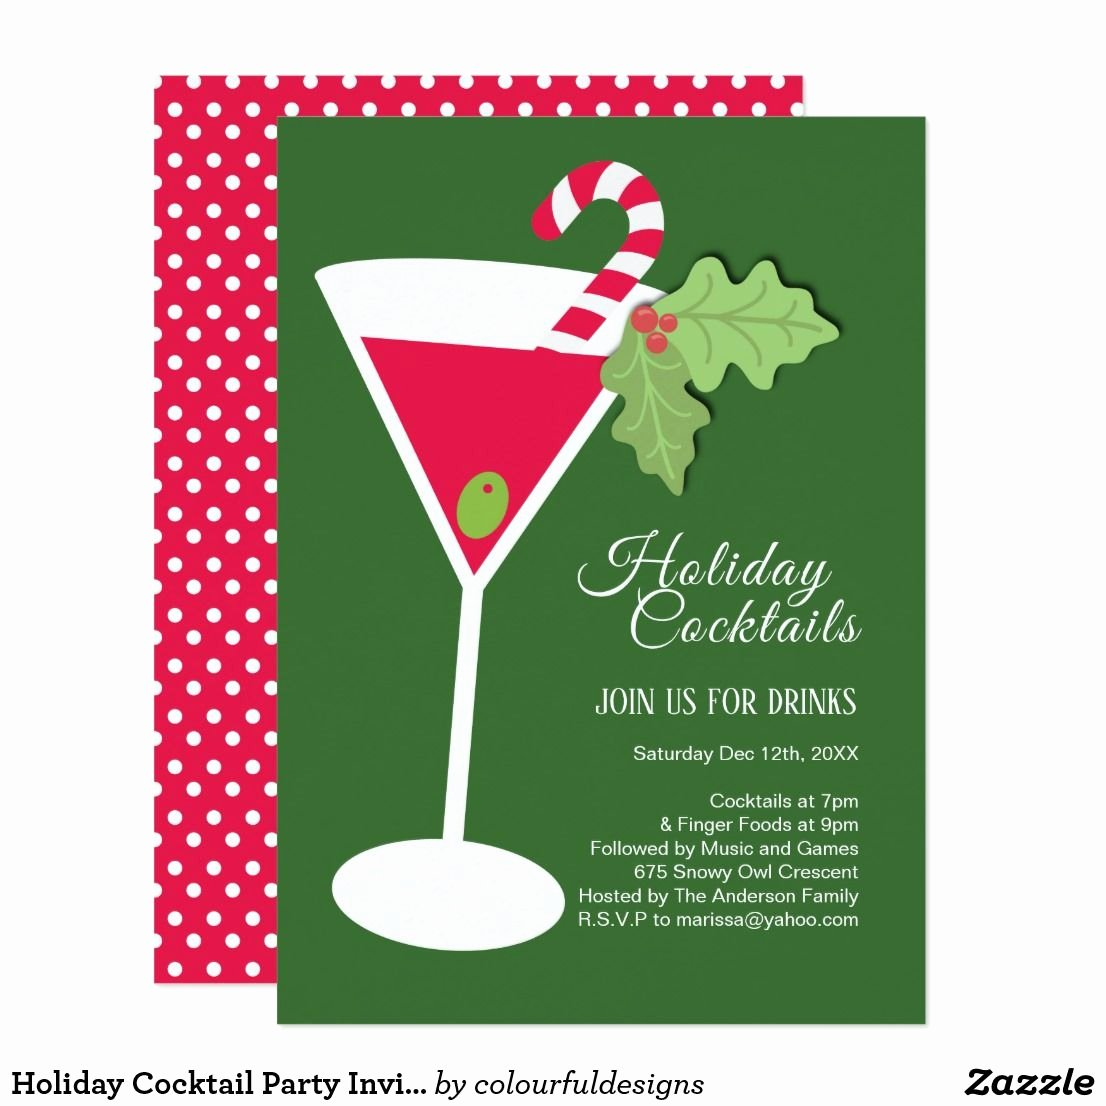 Cocktail Party Invitation Template Lovely Letter format Ideas for Holiday Cocktail Party Invitation